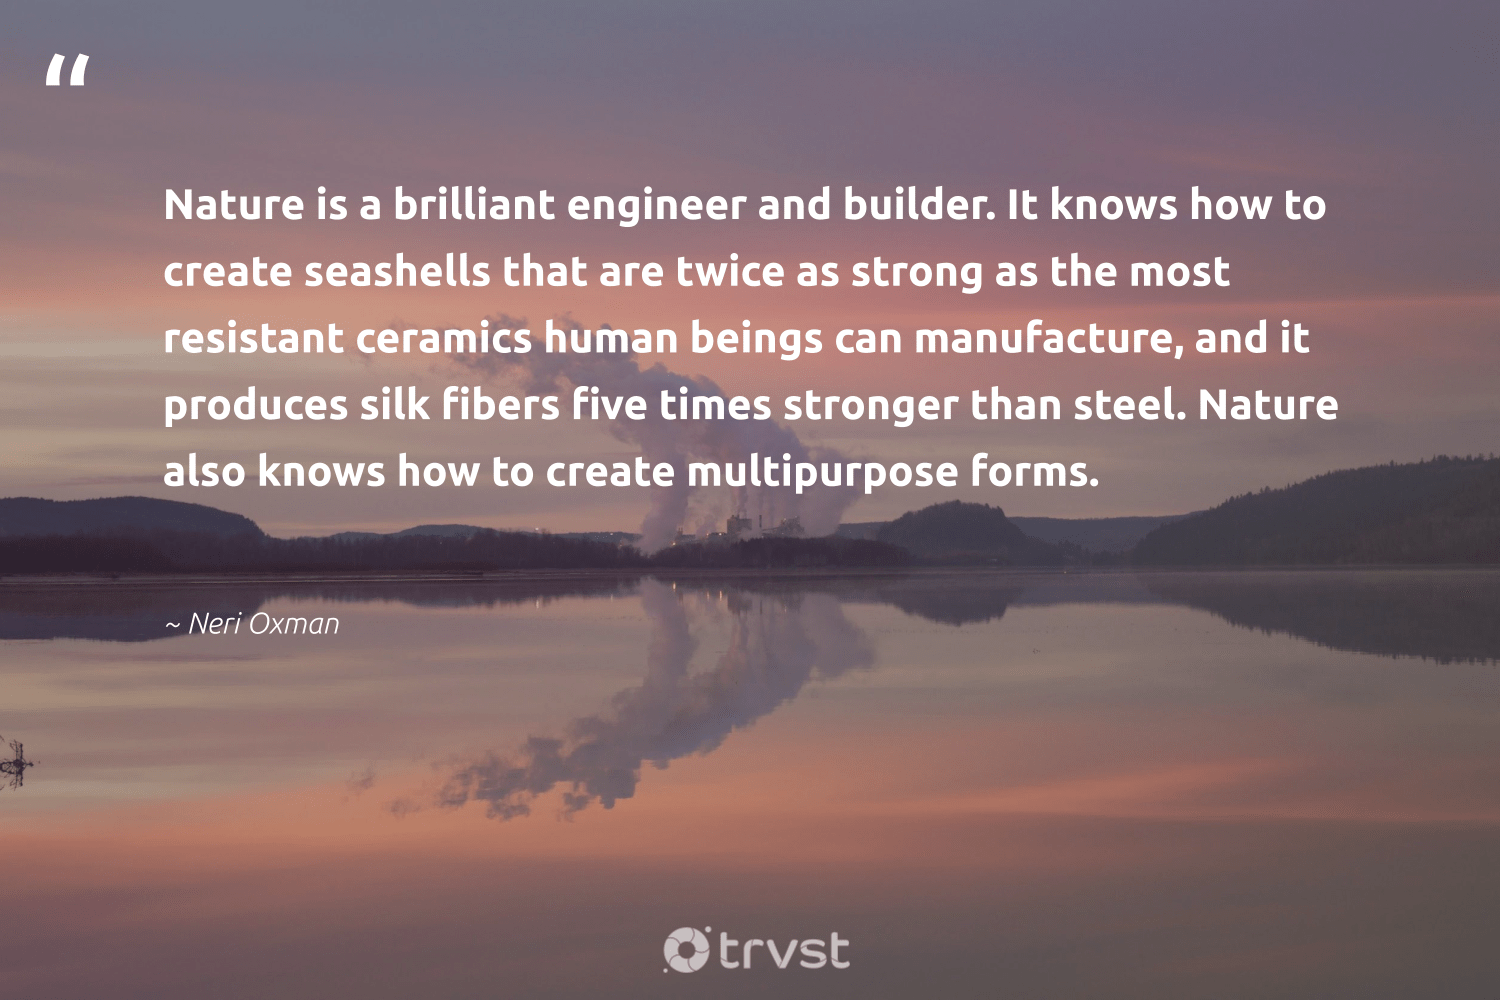 """""""Nature is a brilliant engineer and builder. It knows how to create seashells that are twice as strong as the most resistant ceramics human beings can manufacture, and it produces silk fibers five times stronger than steel. Nature also knows how to create multipurpose forms.""""  - Neri Oxman #trvst #quotes #environment #nature #planet #sustainableliving #noplanetb #socialimpact #sustainable #earth #dogood #conservation"""